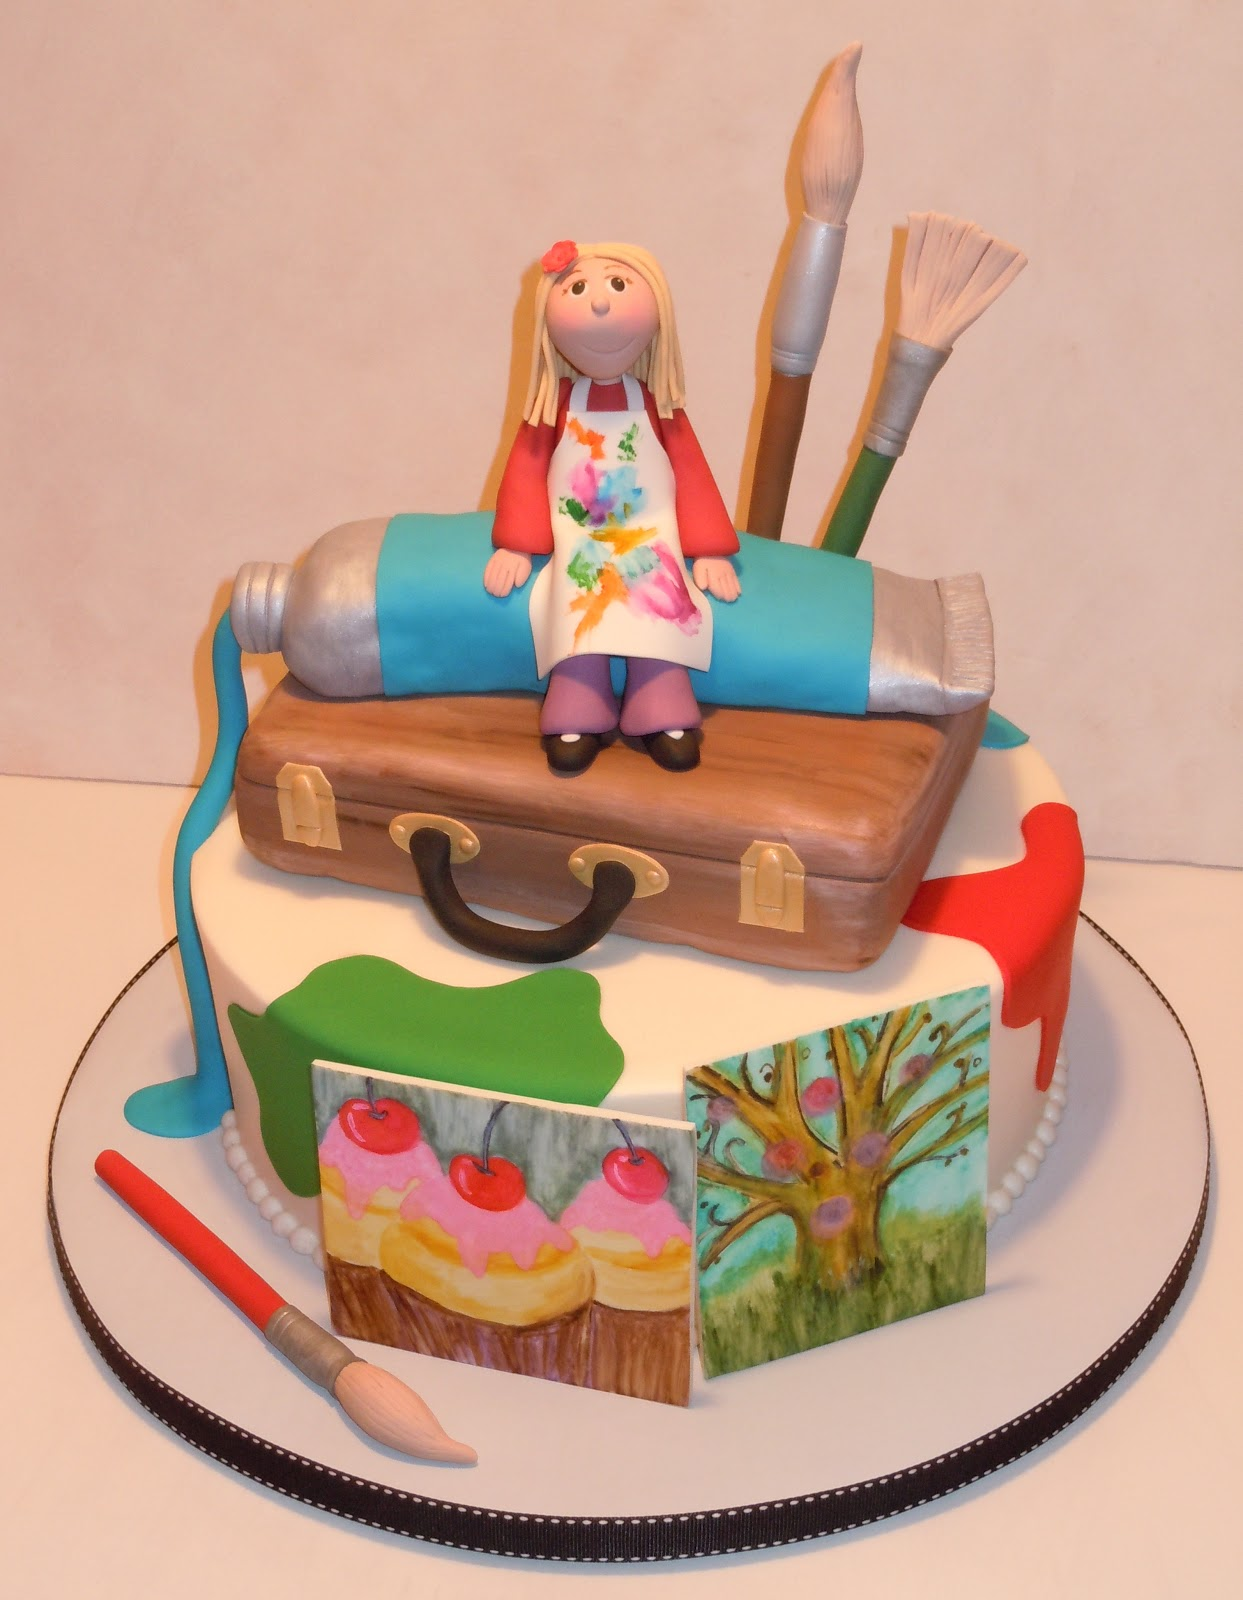 Cake Artist 4 You : Kids Birthday cakes on Pinterest Rainbow Cakes, Artist ...